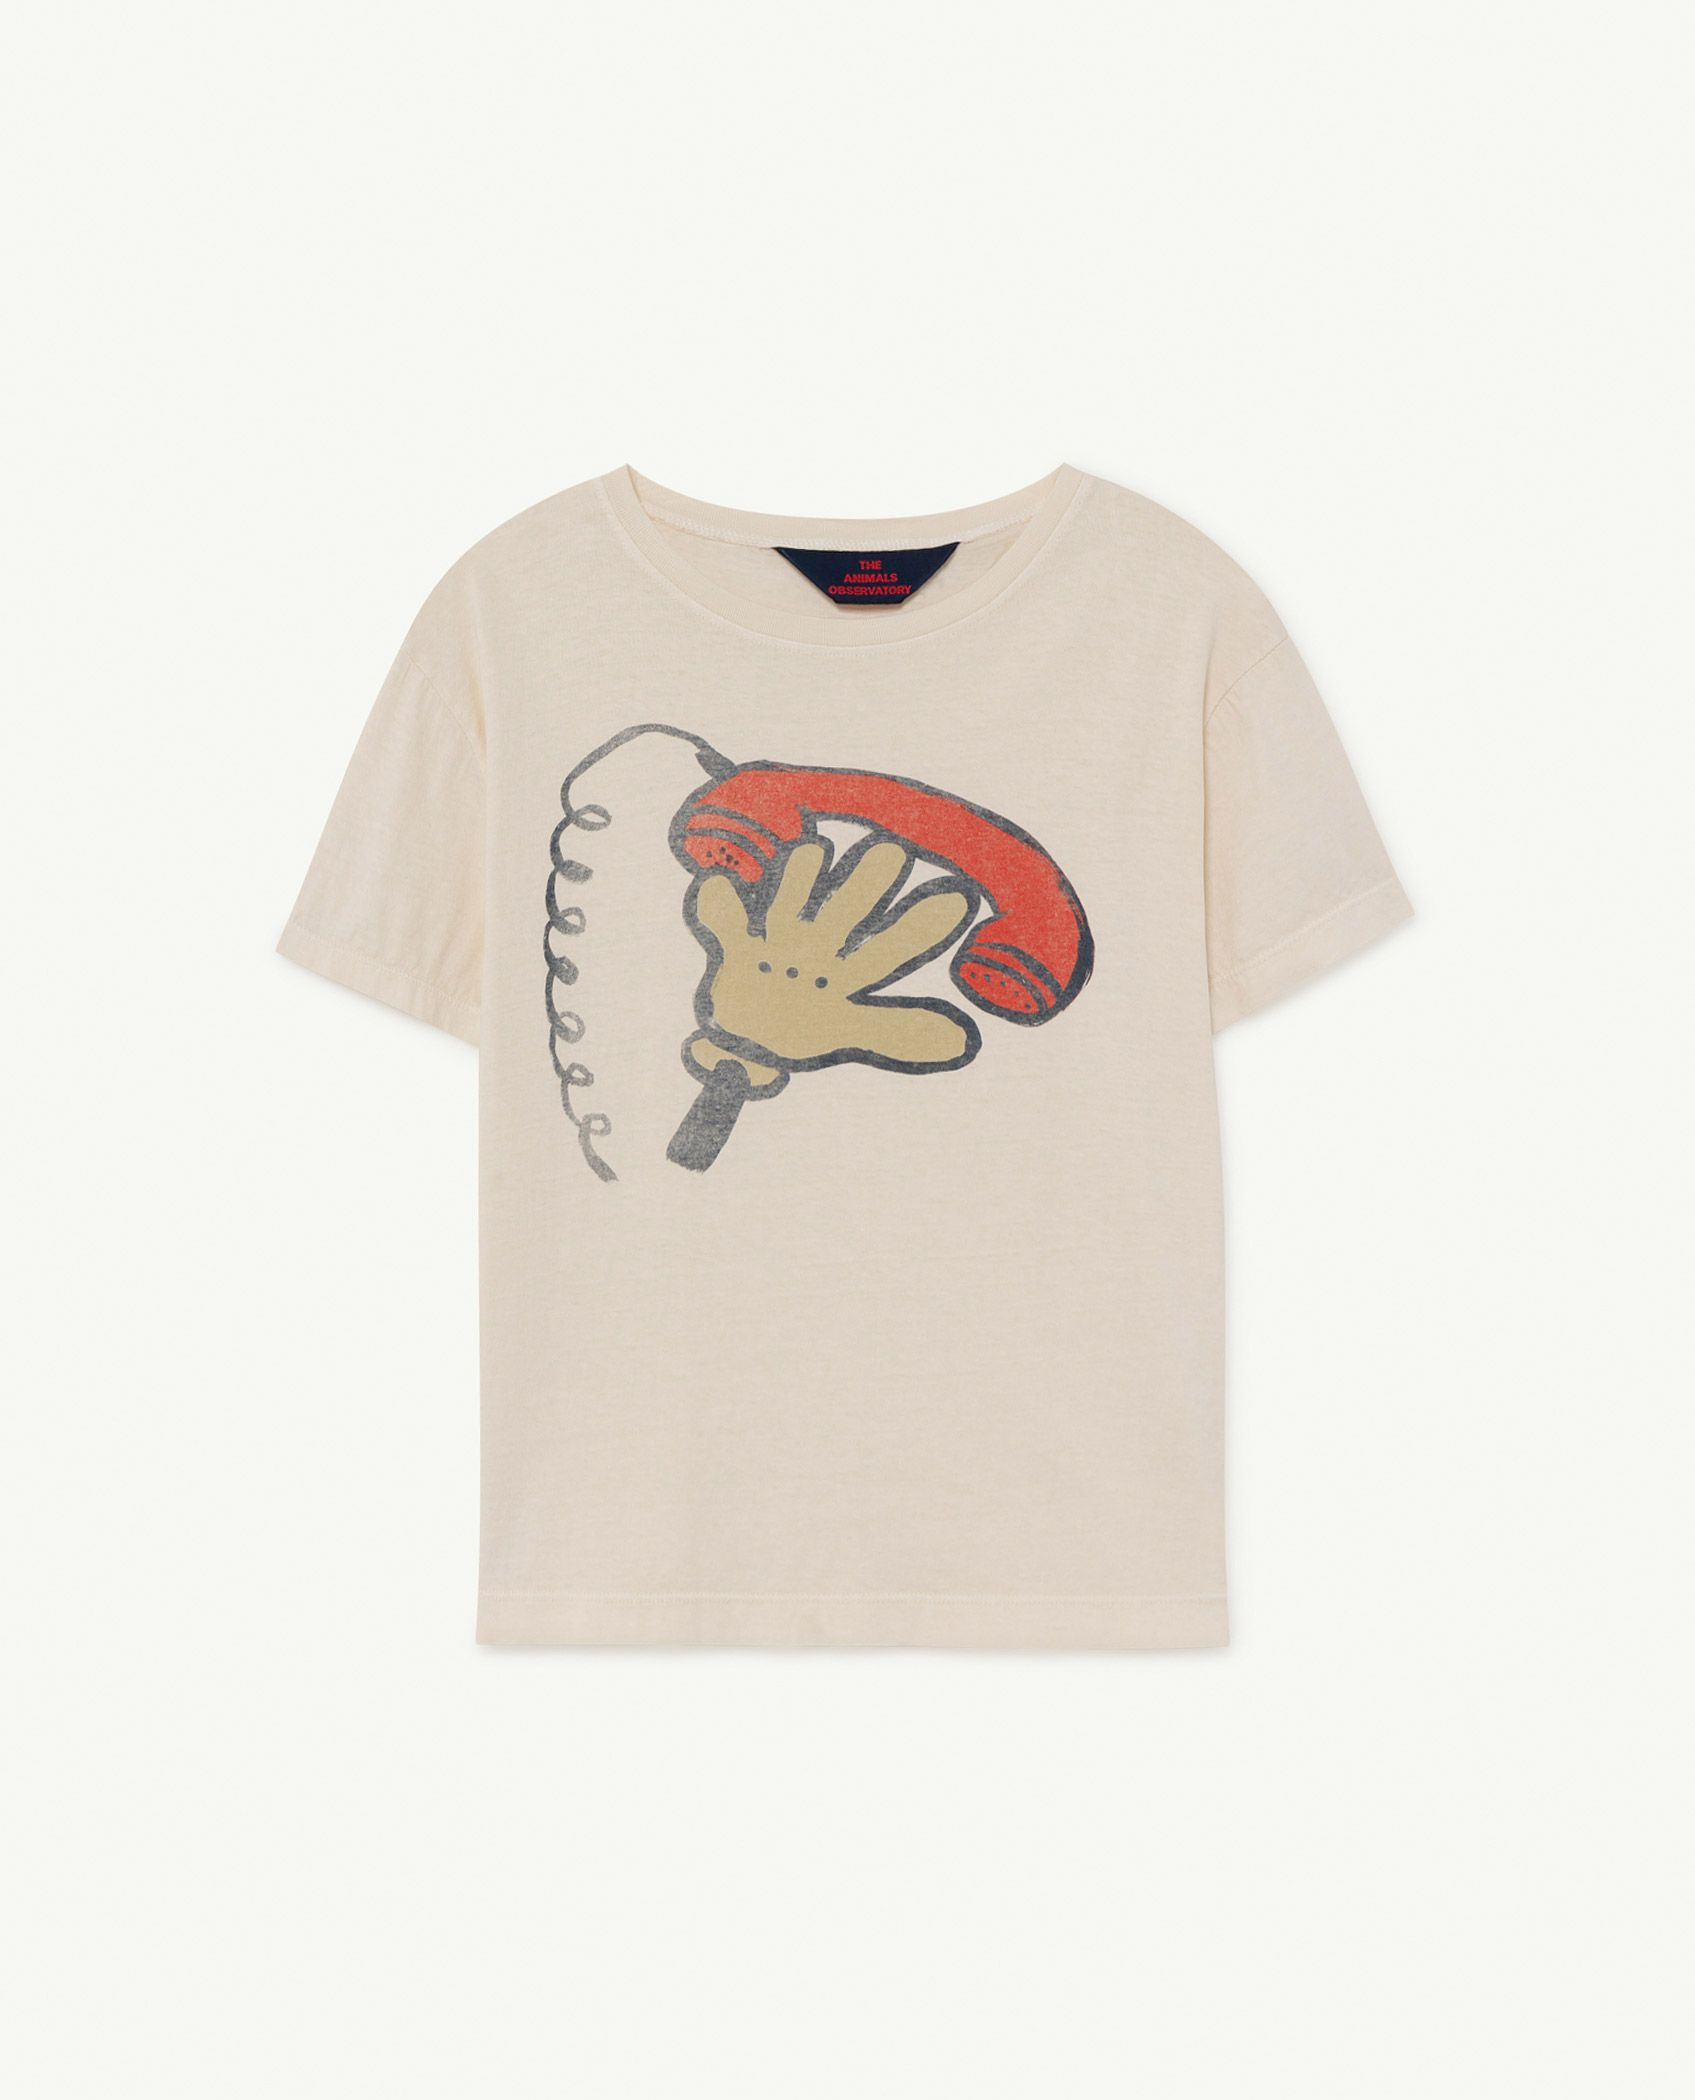 White Telephone Rooster T-Shirt img-1